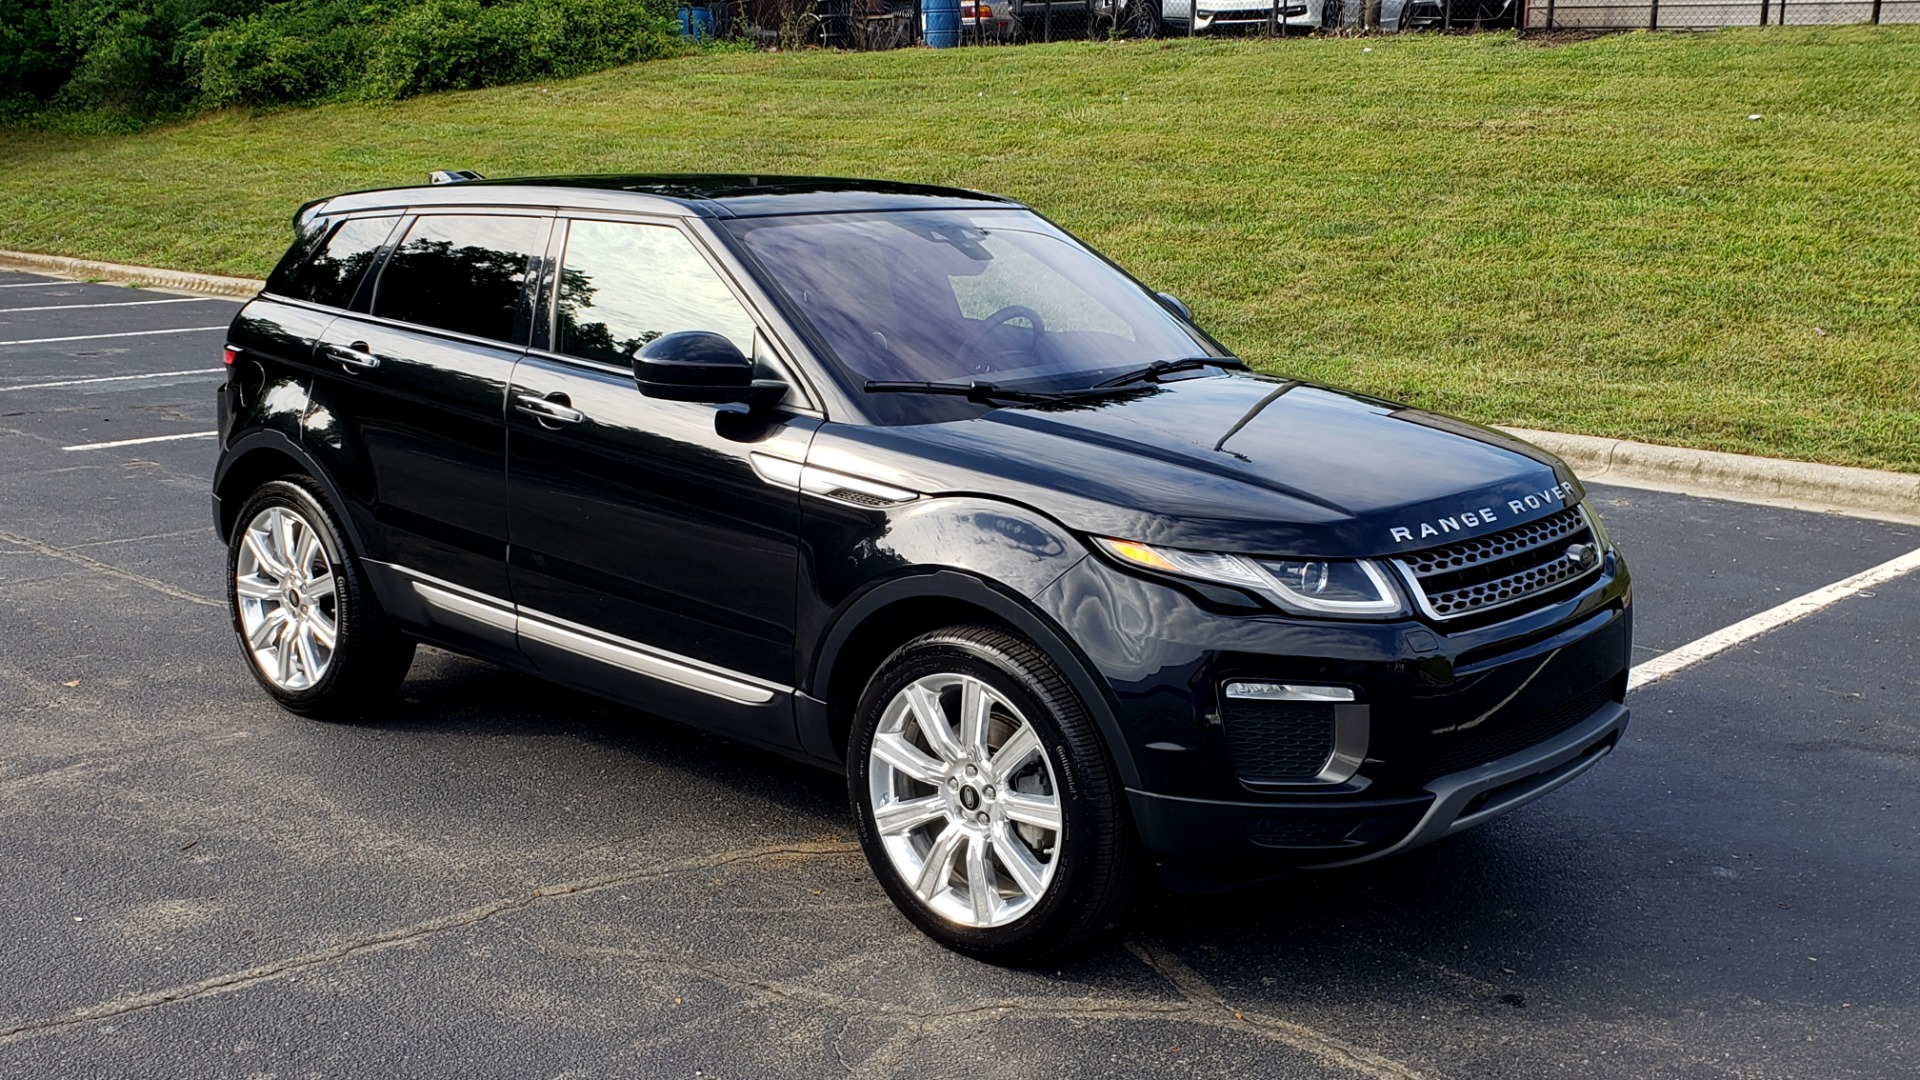 Used 2016 Land Rover RANGE ROVER EVOQUE HSE / AWD / NAV / MERIDIAN / PANO-ROOF / REARVIEW for sale Sold at Formula Imports in Charlotte NC 28227 4